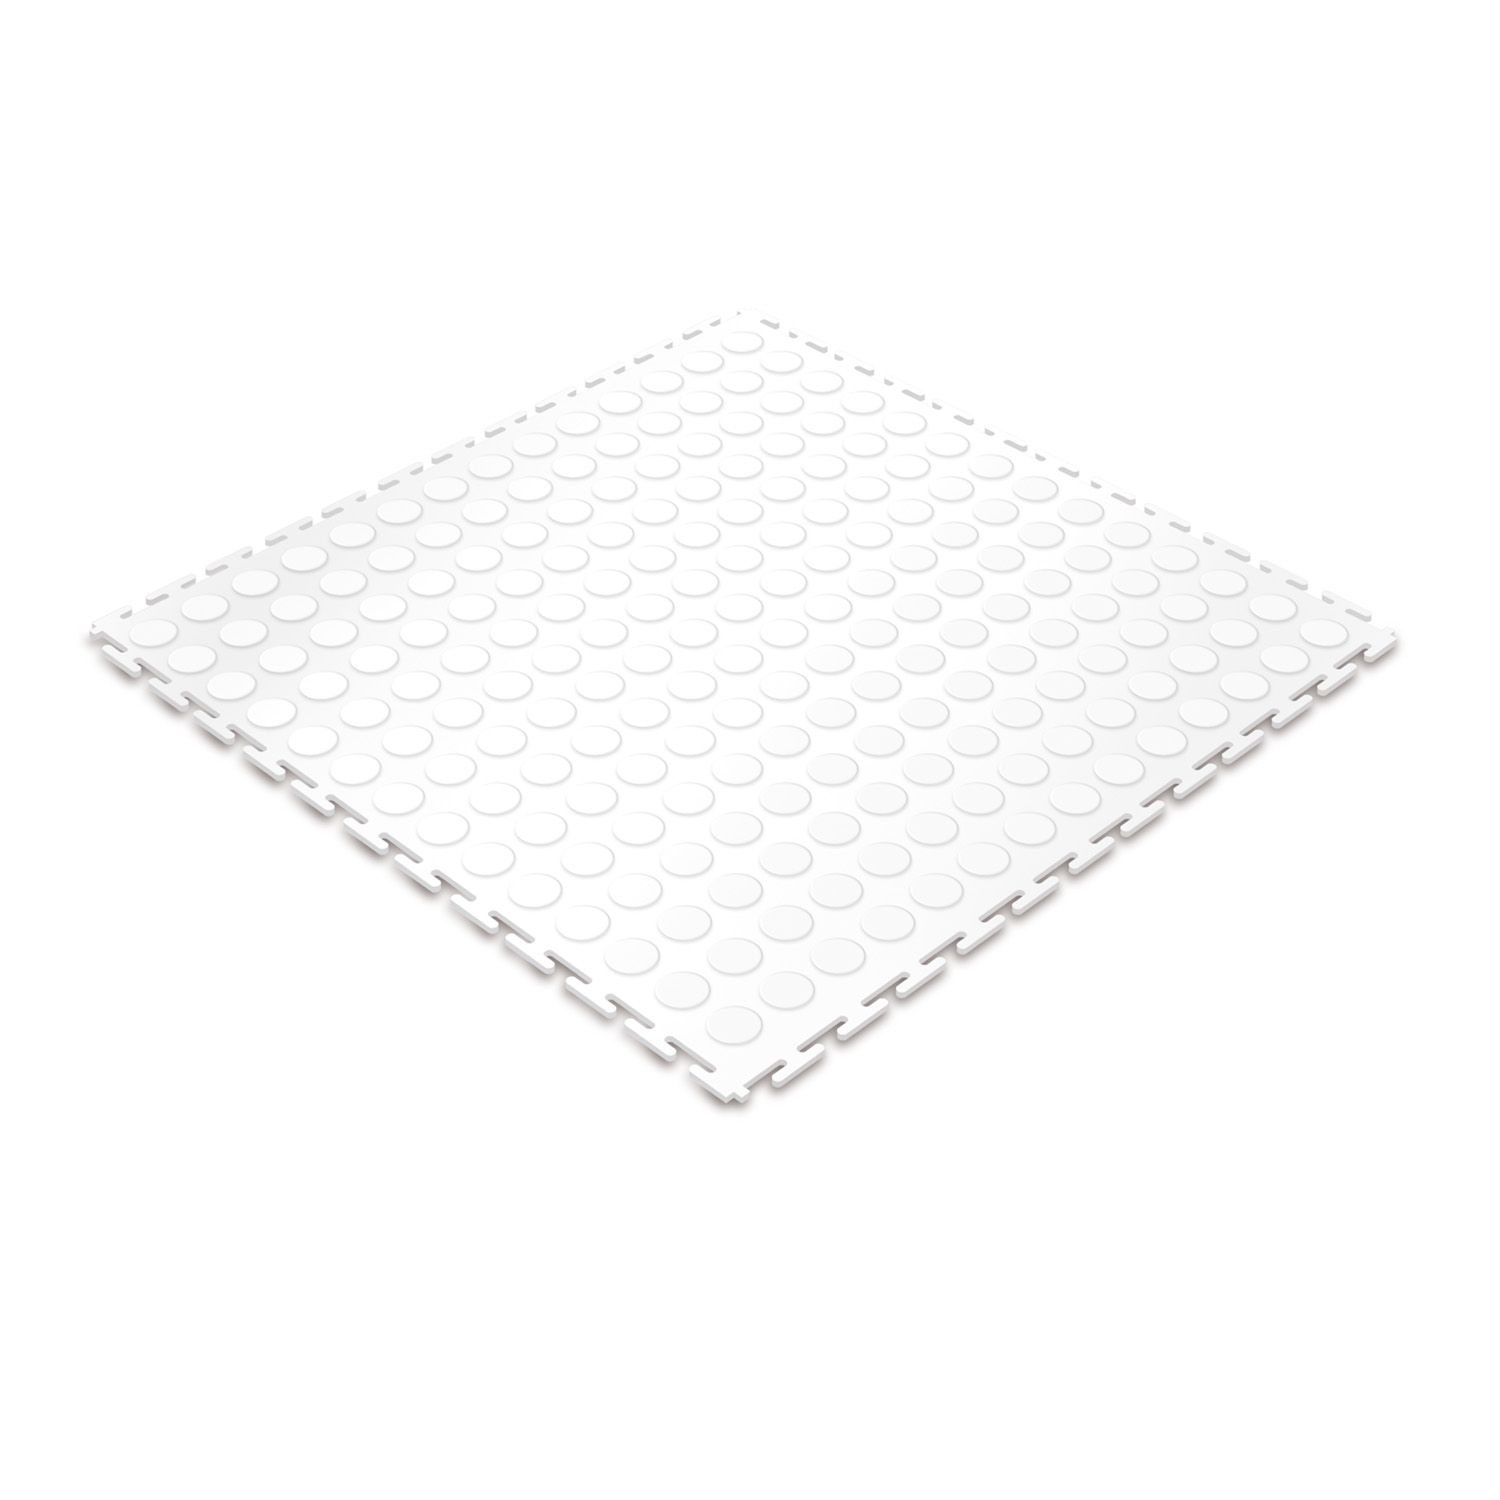 Standard floor tile (white/studded)